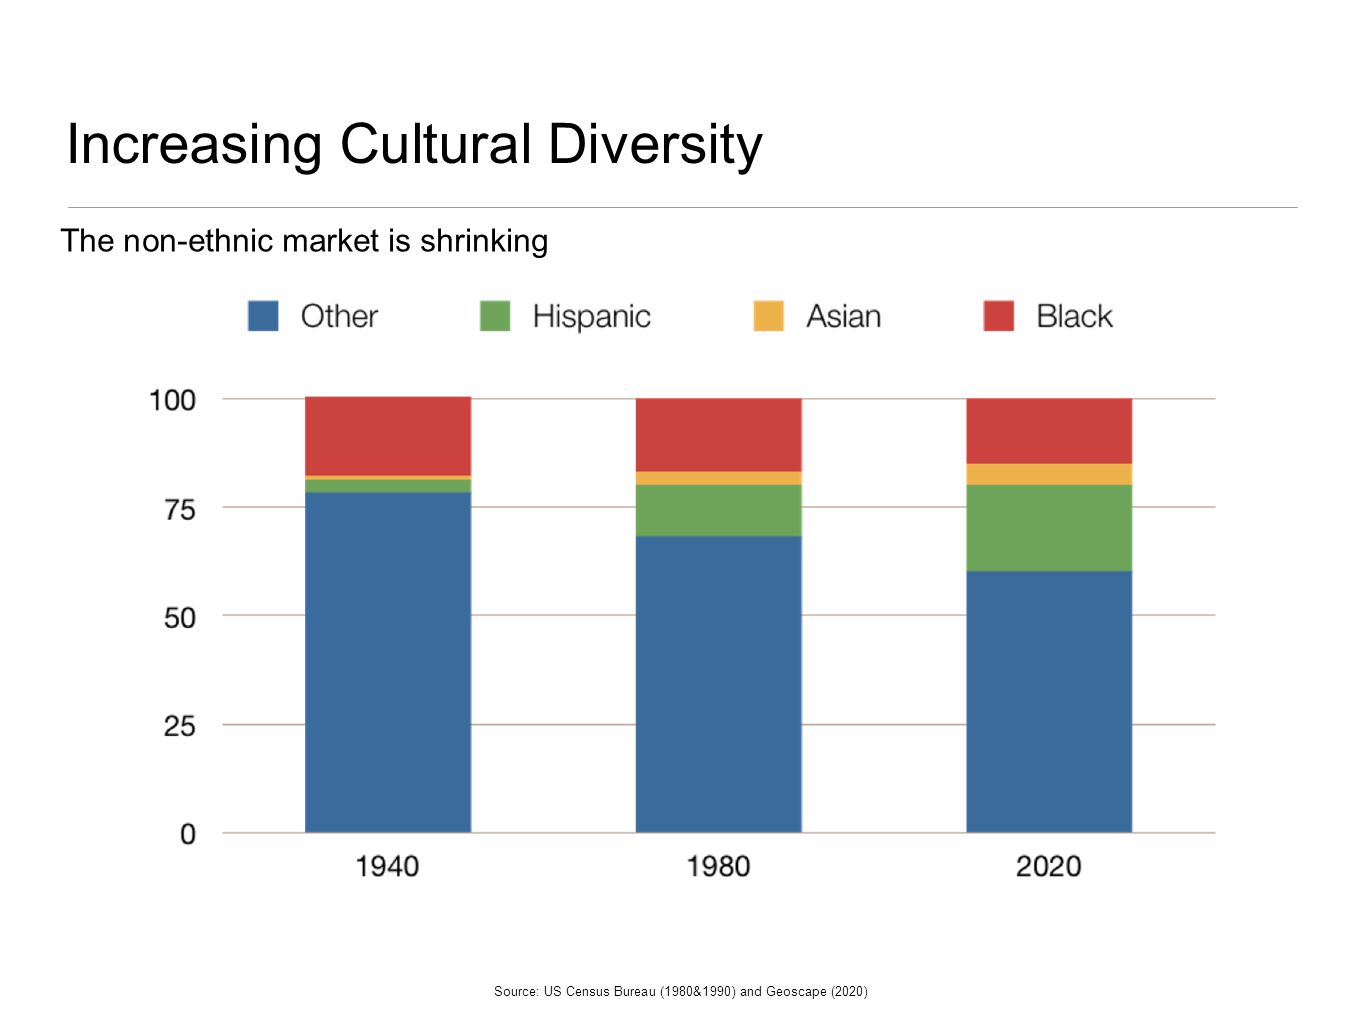 Increasing Cultural Diversity Source: US Census Bureau (1980&1990) and Geoscape (2020) The non-ethnic market is shrinking